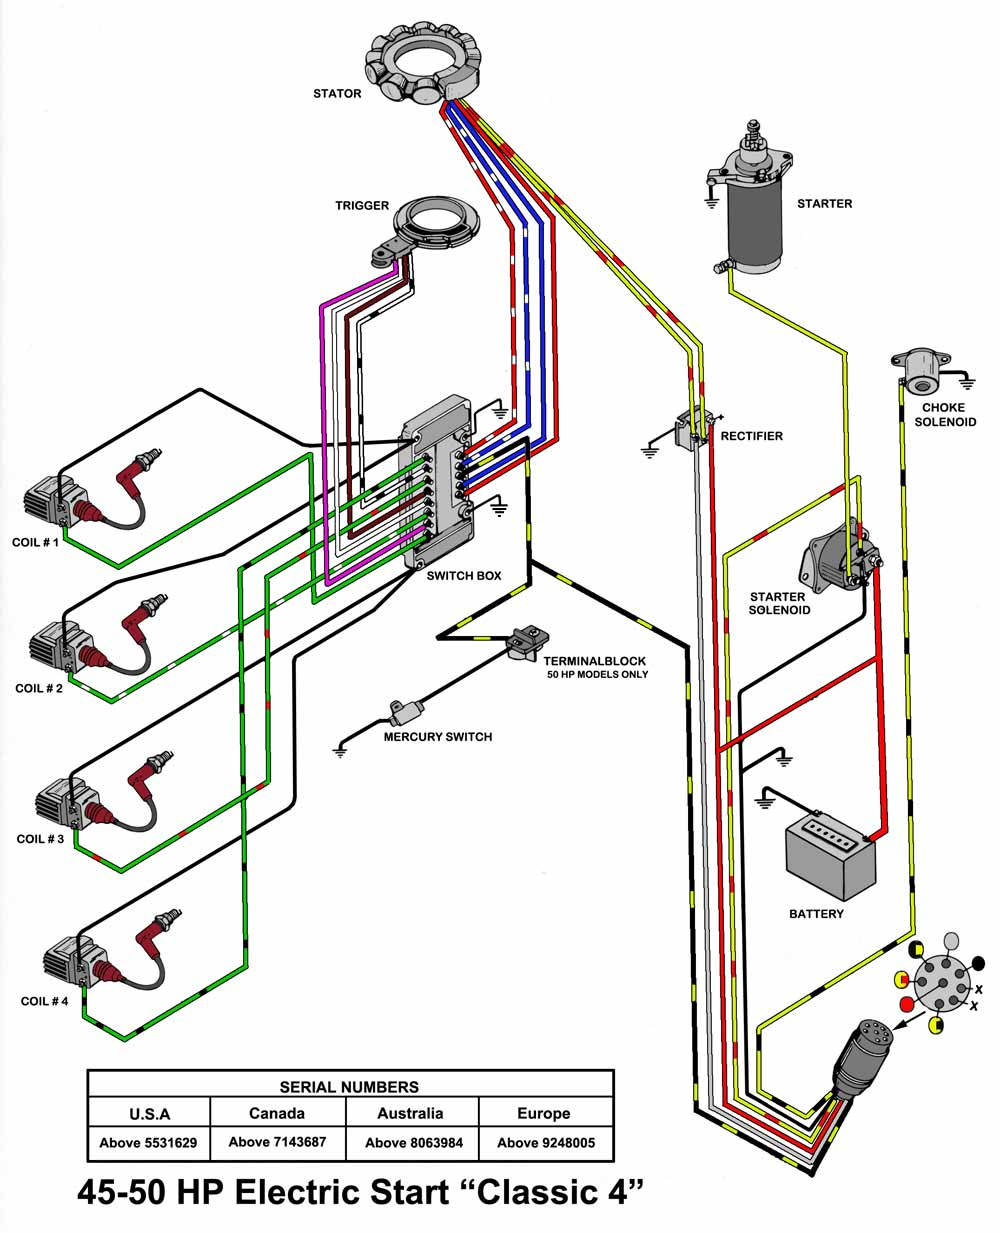 Mercury Outboard Wiring diagrams -- Mastertech Marin on power controller diagram, motor diagram, power transformer diagram, ignition diagram, power transmission diagram, power wheels diagram, power steering diagram, power antenna diagram, power windows diagram, troubleshooting diagram, electrical diagram, wire diagram, power control diagram, safety diagram, power relay diagram, grounding diagram, power inverter diagram, installation diagram, power cable diagram, power design diagram,